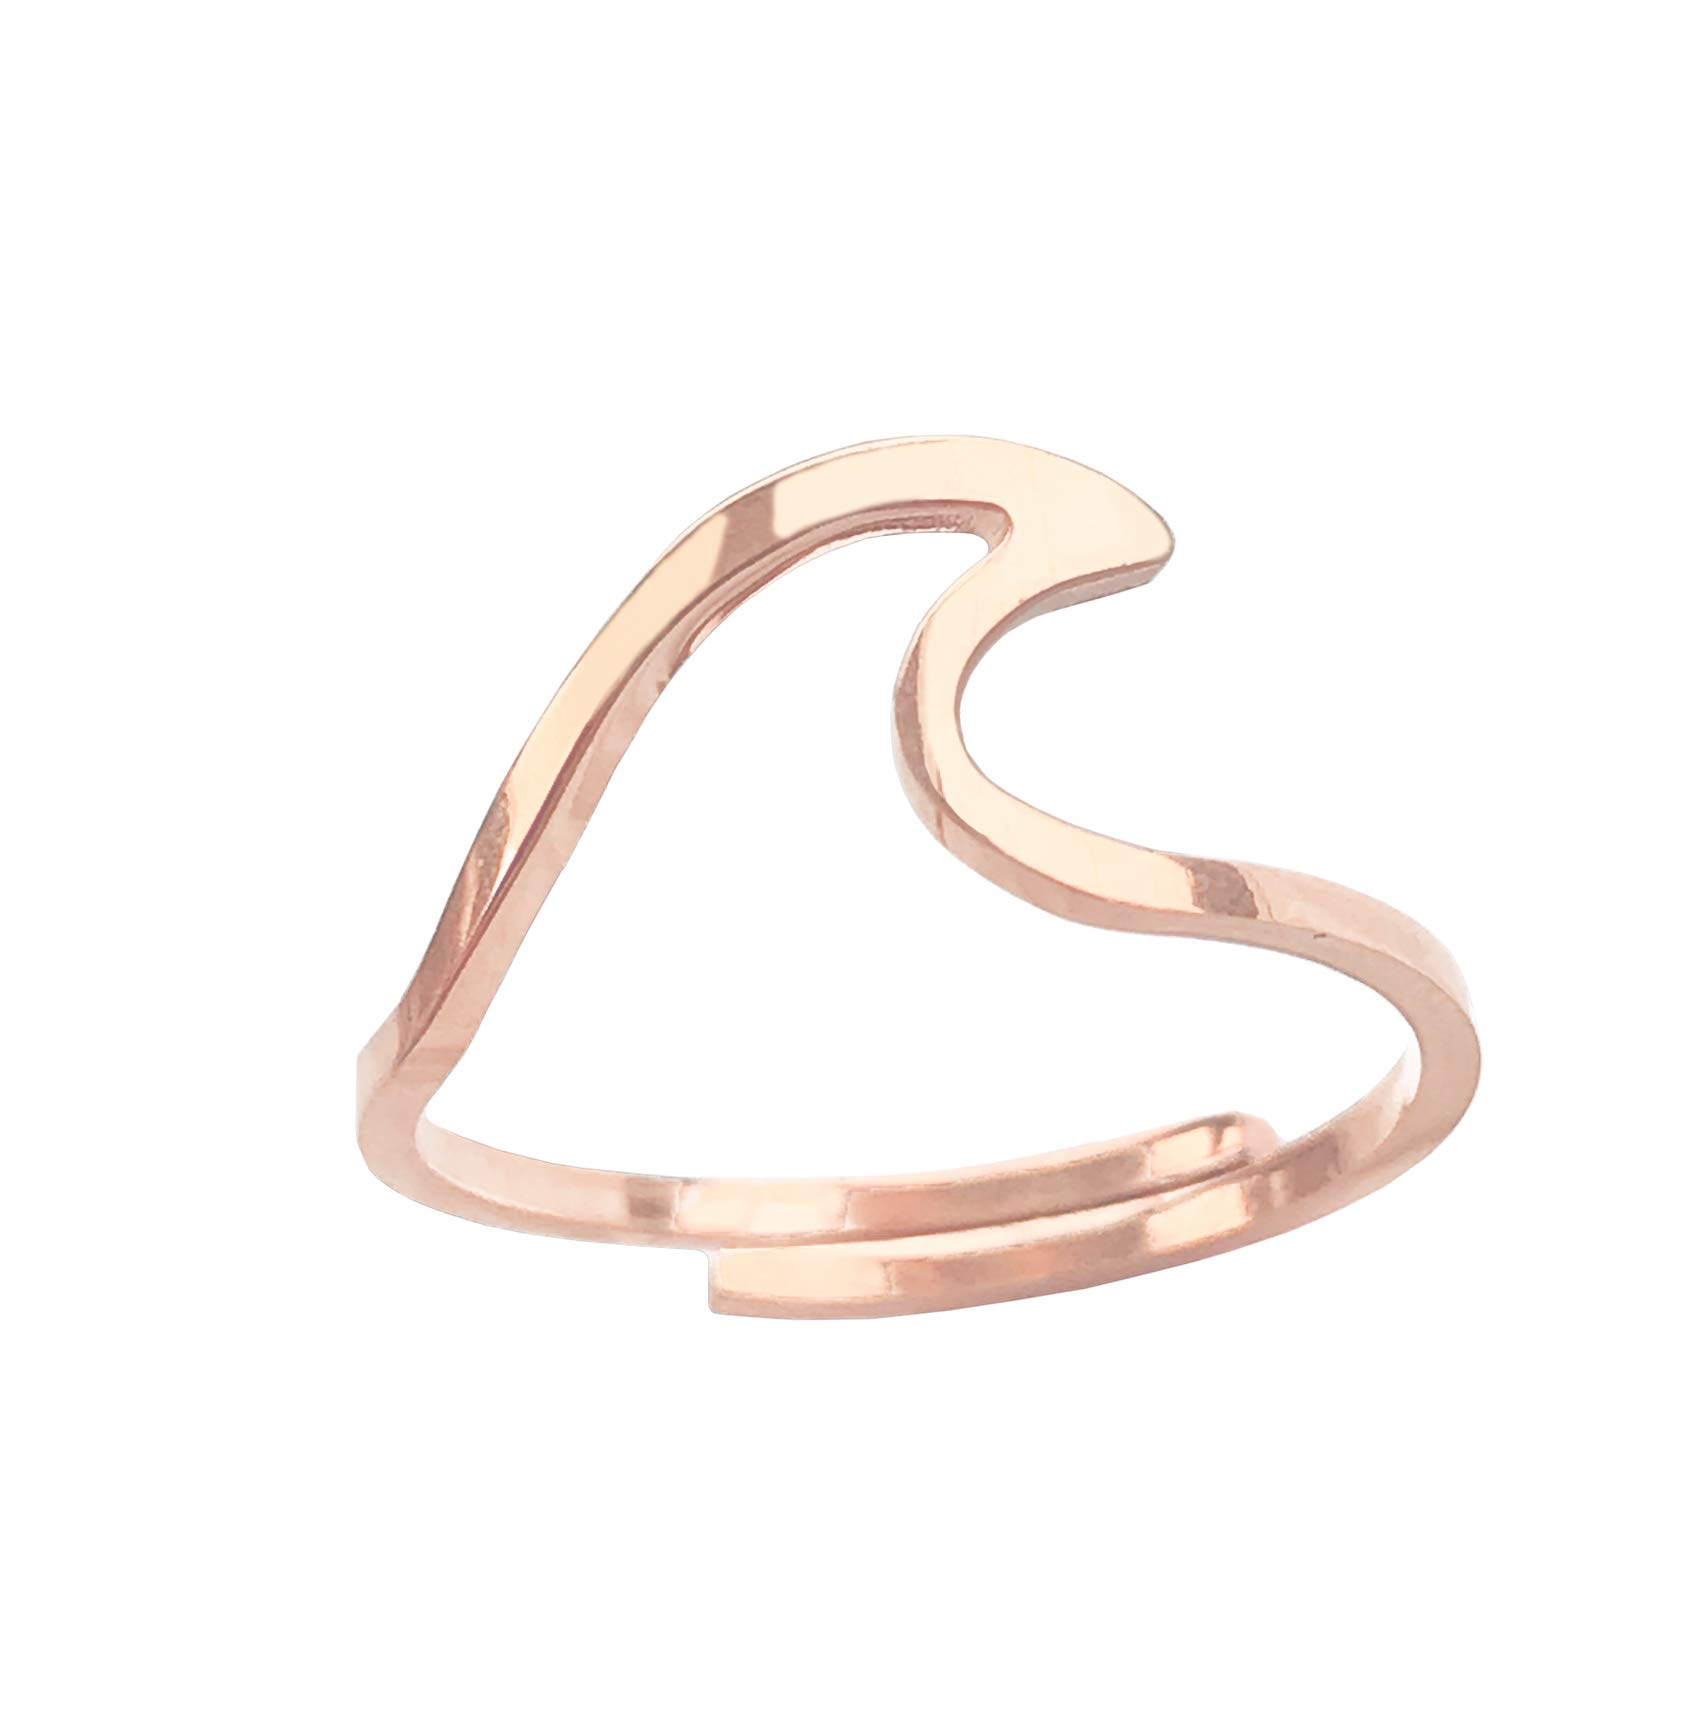 Altitude Boutique Ocean Wave Ring, Beach Ring for Her Love of the Sea (Rose Gold)